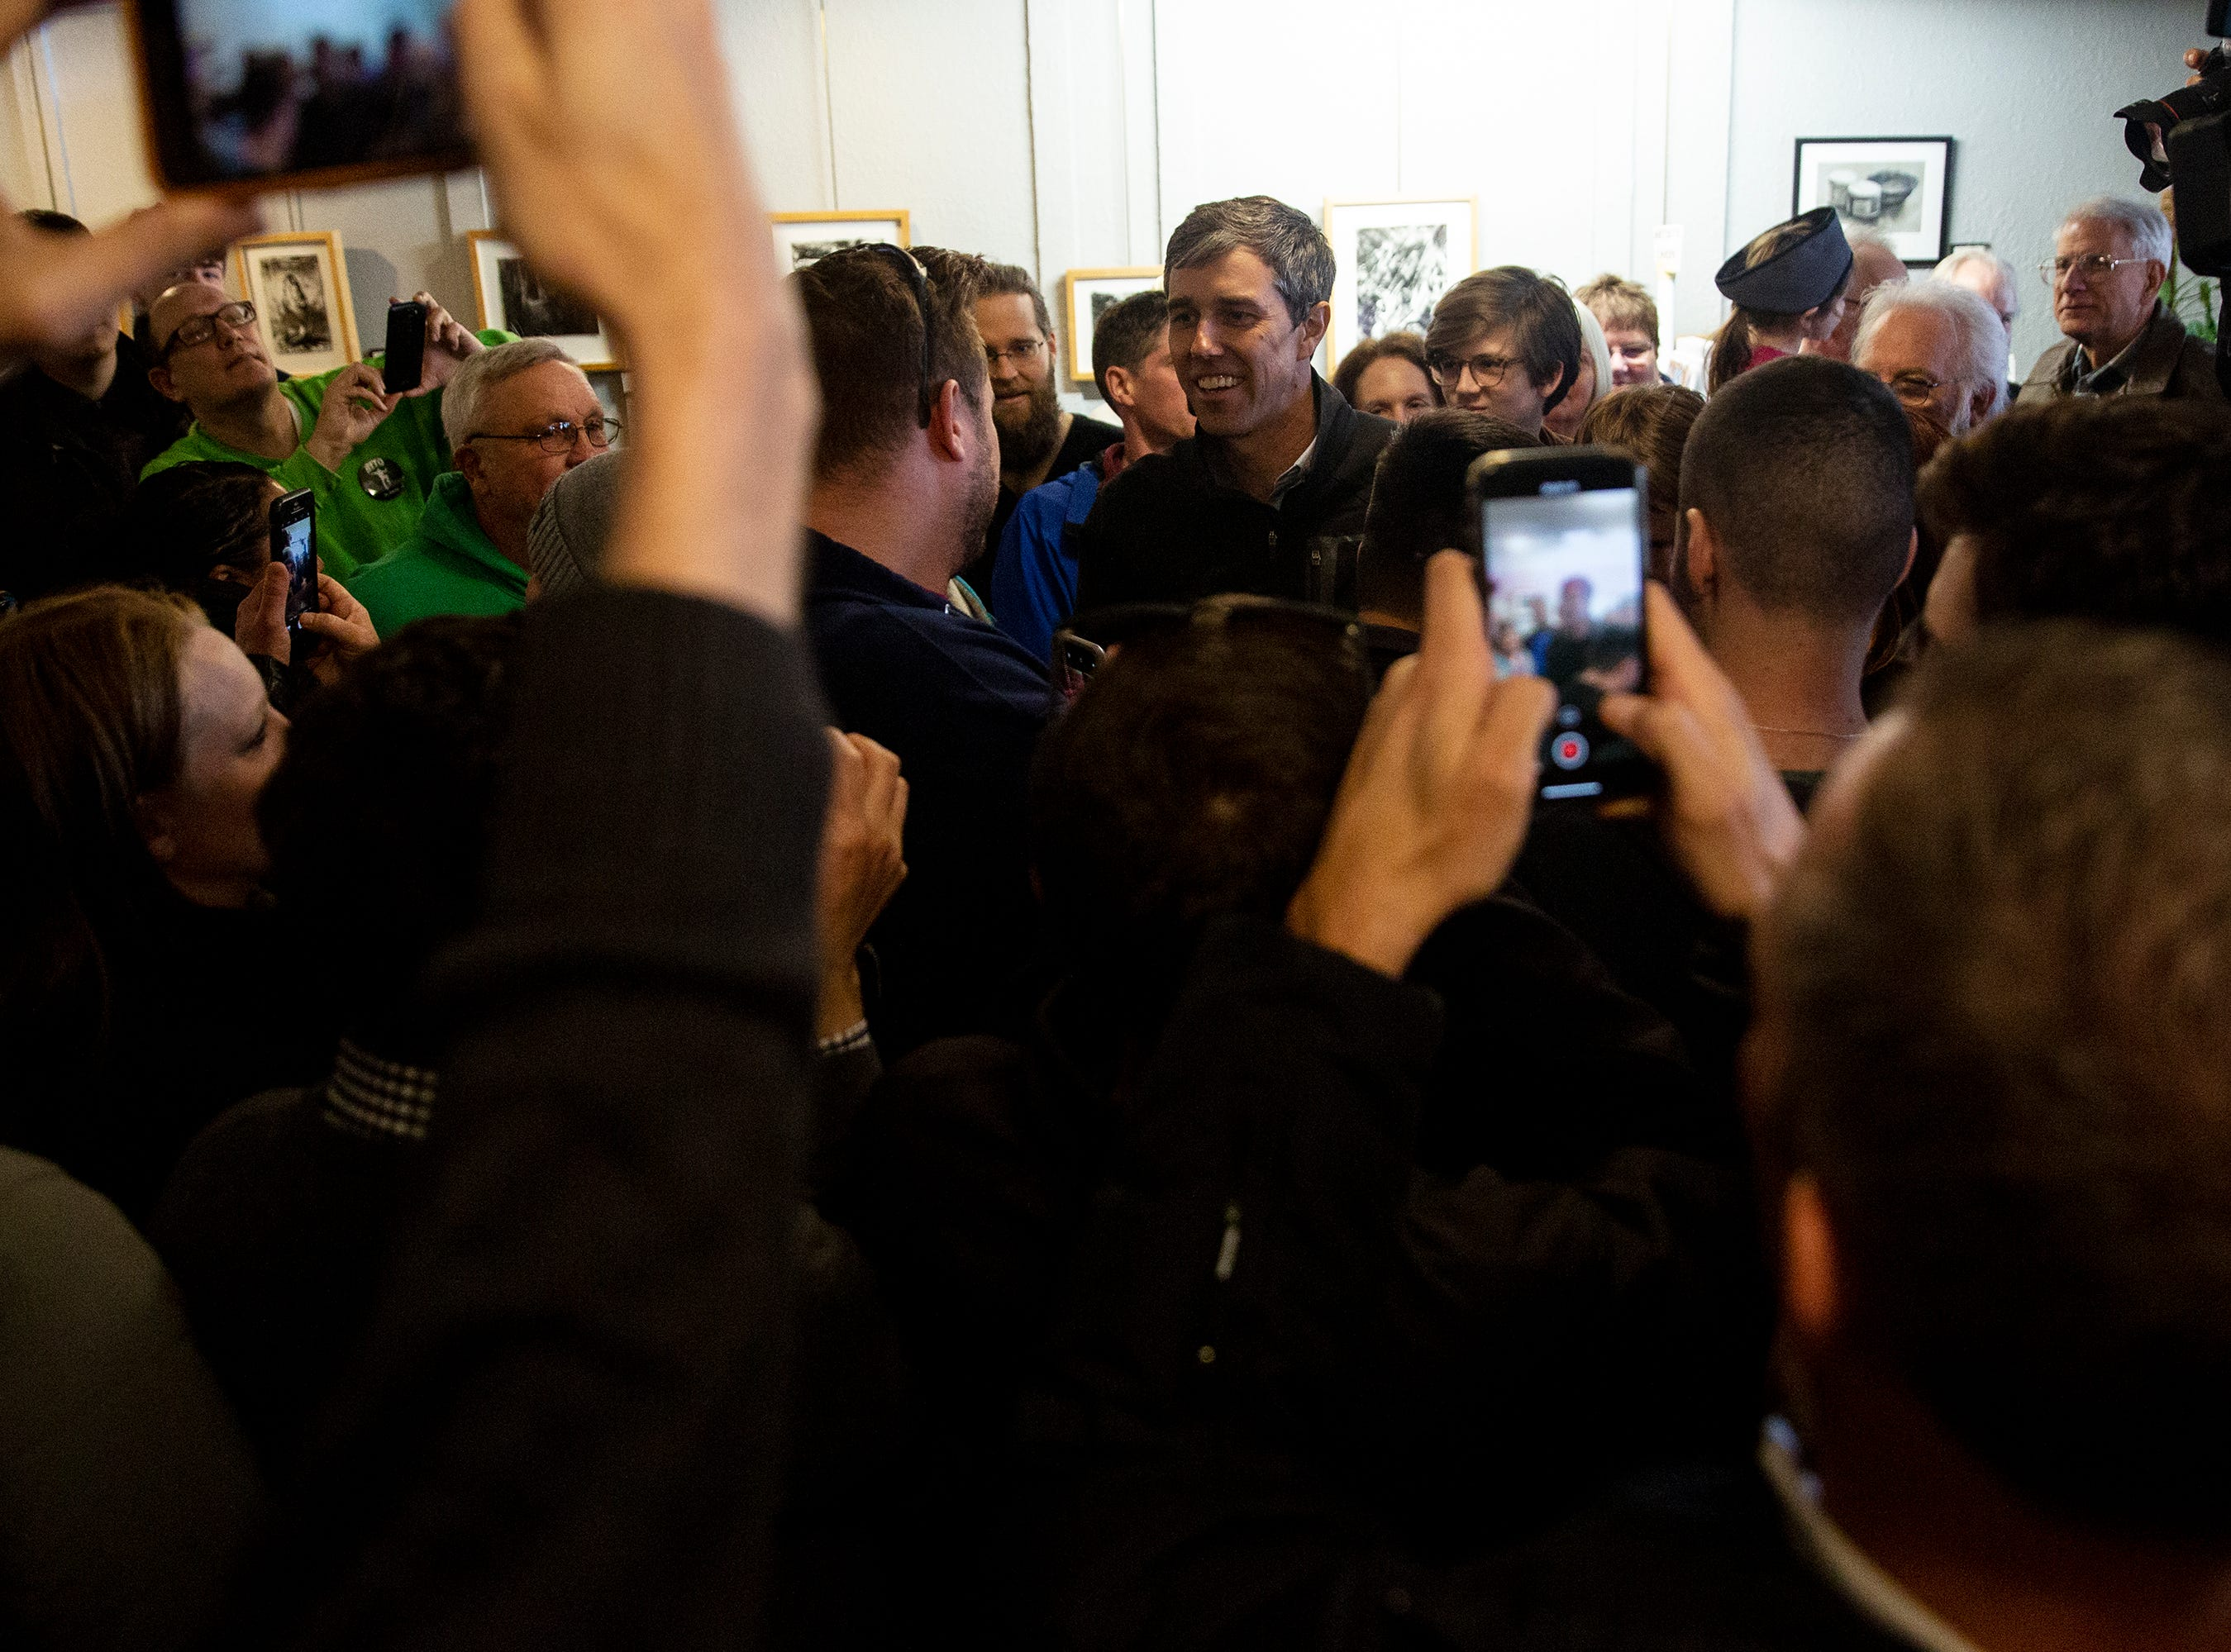 Beto O'Rourke, Democratic candidate for president, enters the crush of people gathered to see him on Friday, March 15, 2019, in Washington. This is O'Rourke's first trip to Iowa after announcing his campaign.